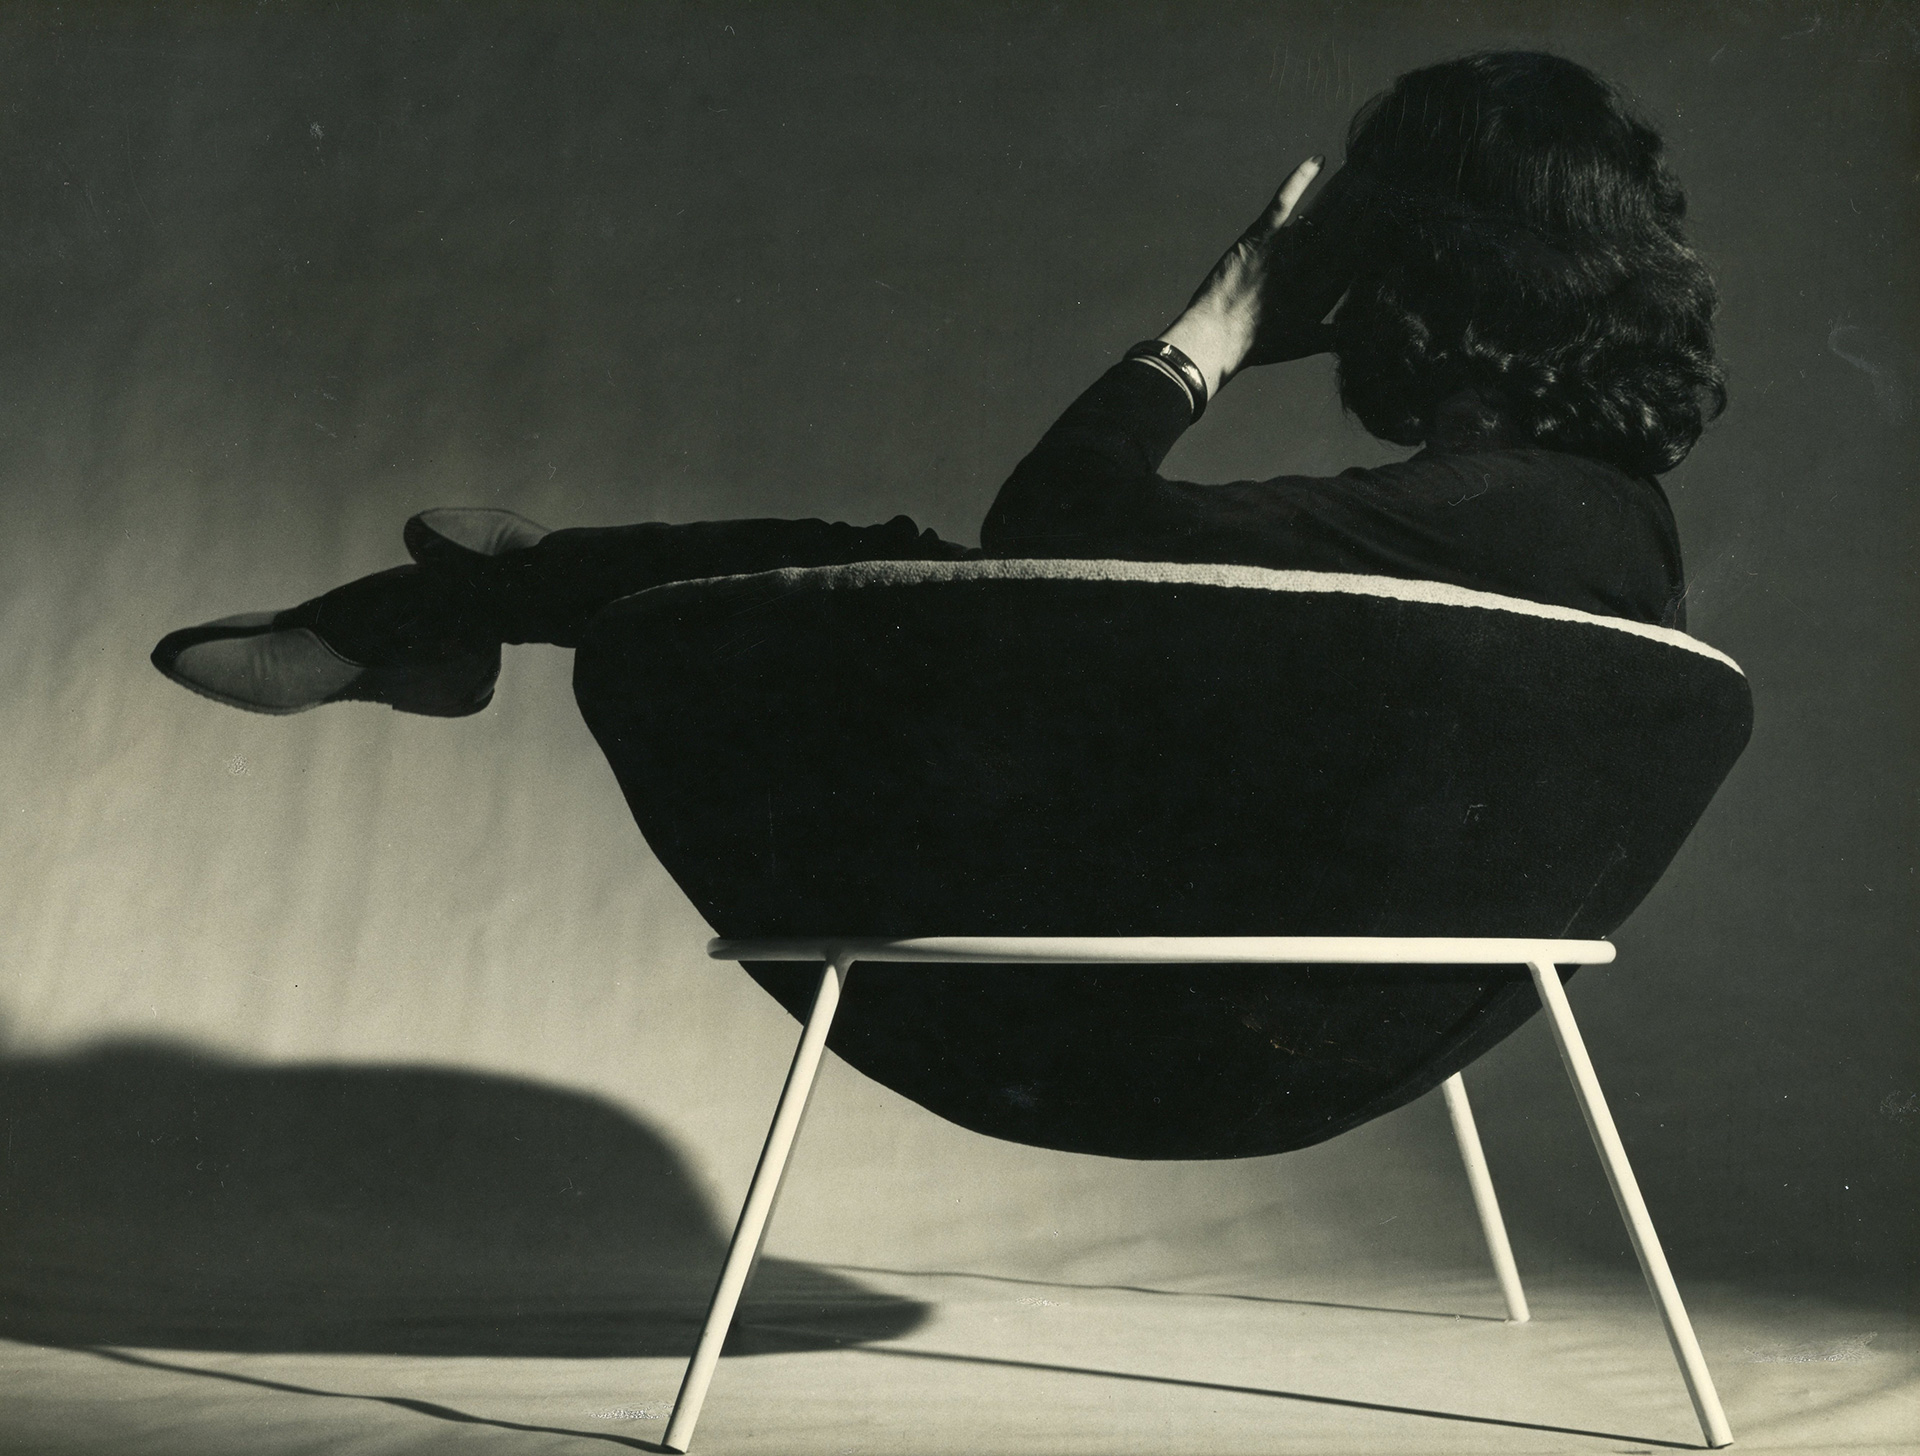 Lina Bo Bardi sitting on a Bardi's Bowl| The Special Golden Lion for Lifetime Achievement, in memoriam, Biennale Architettura 2021 | Lina Bo Bardi | STIRworld